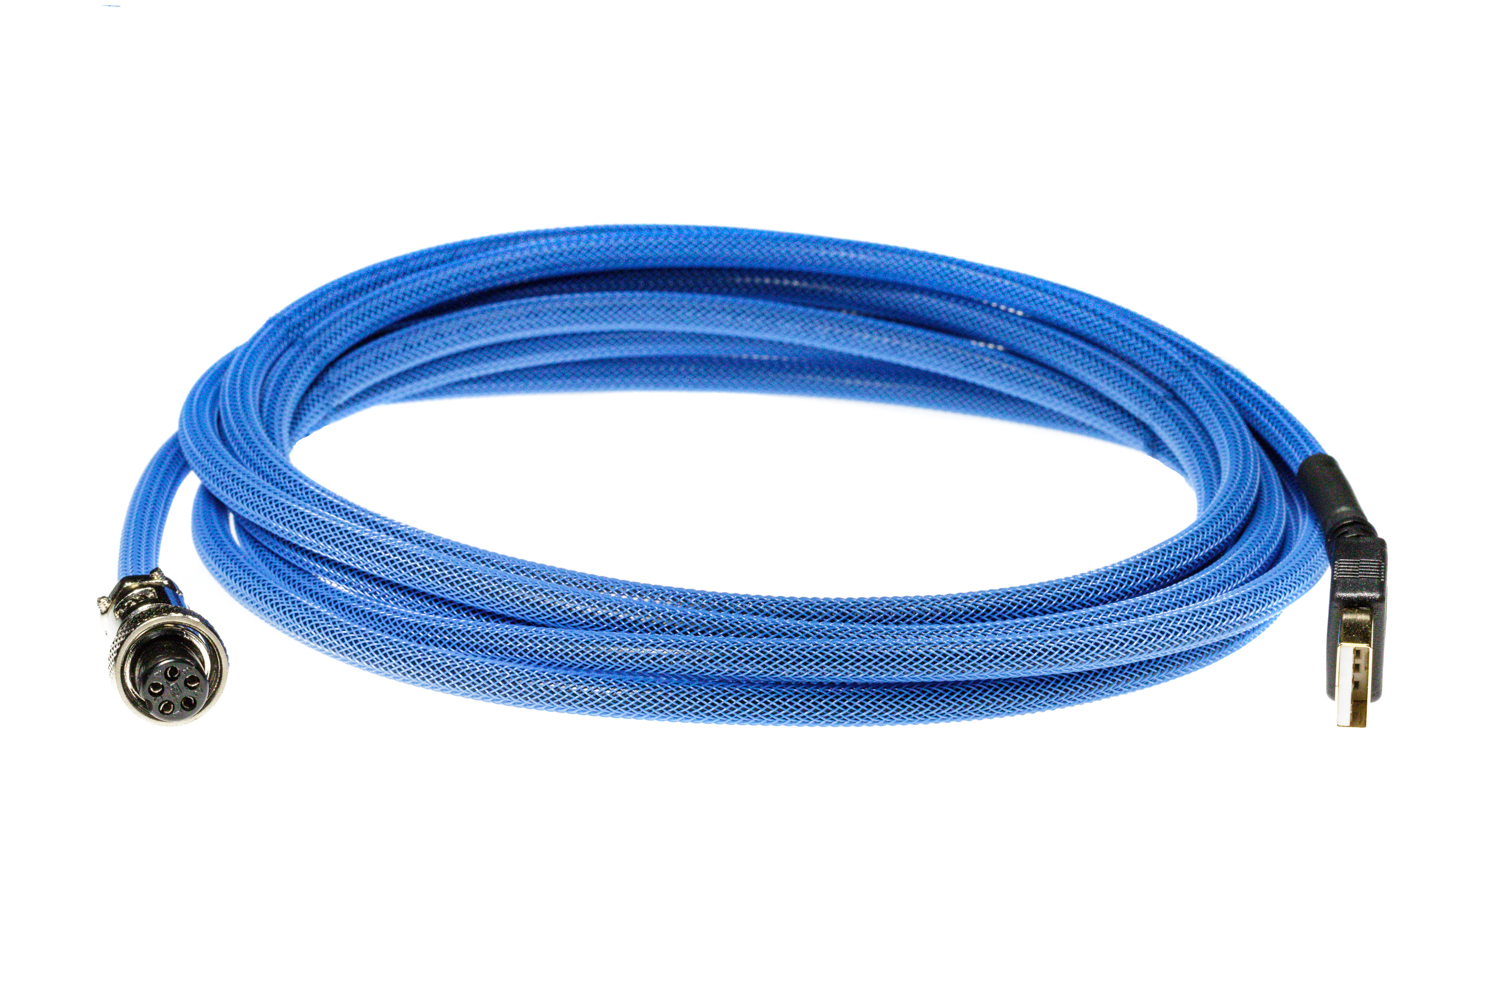 Pro Cable with Blue TechFlex USB Cable